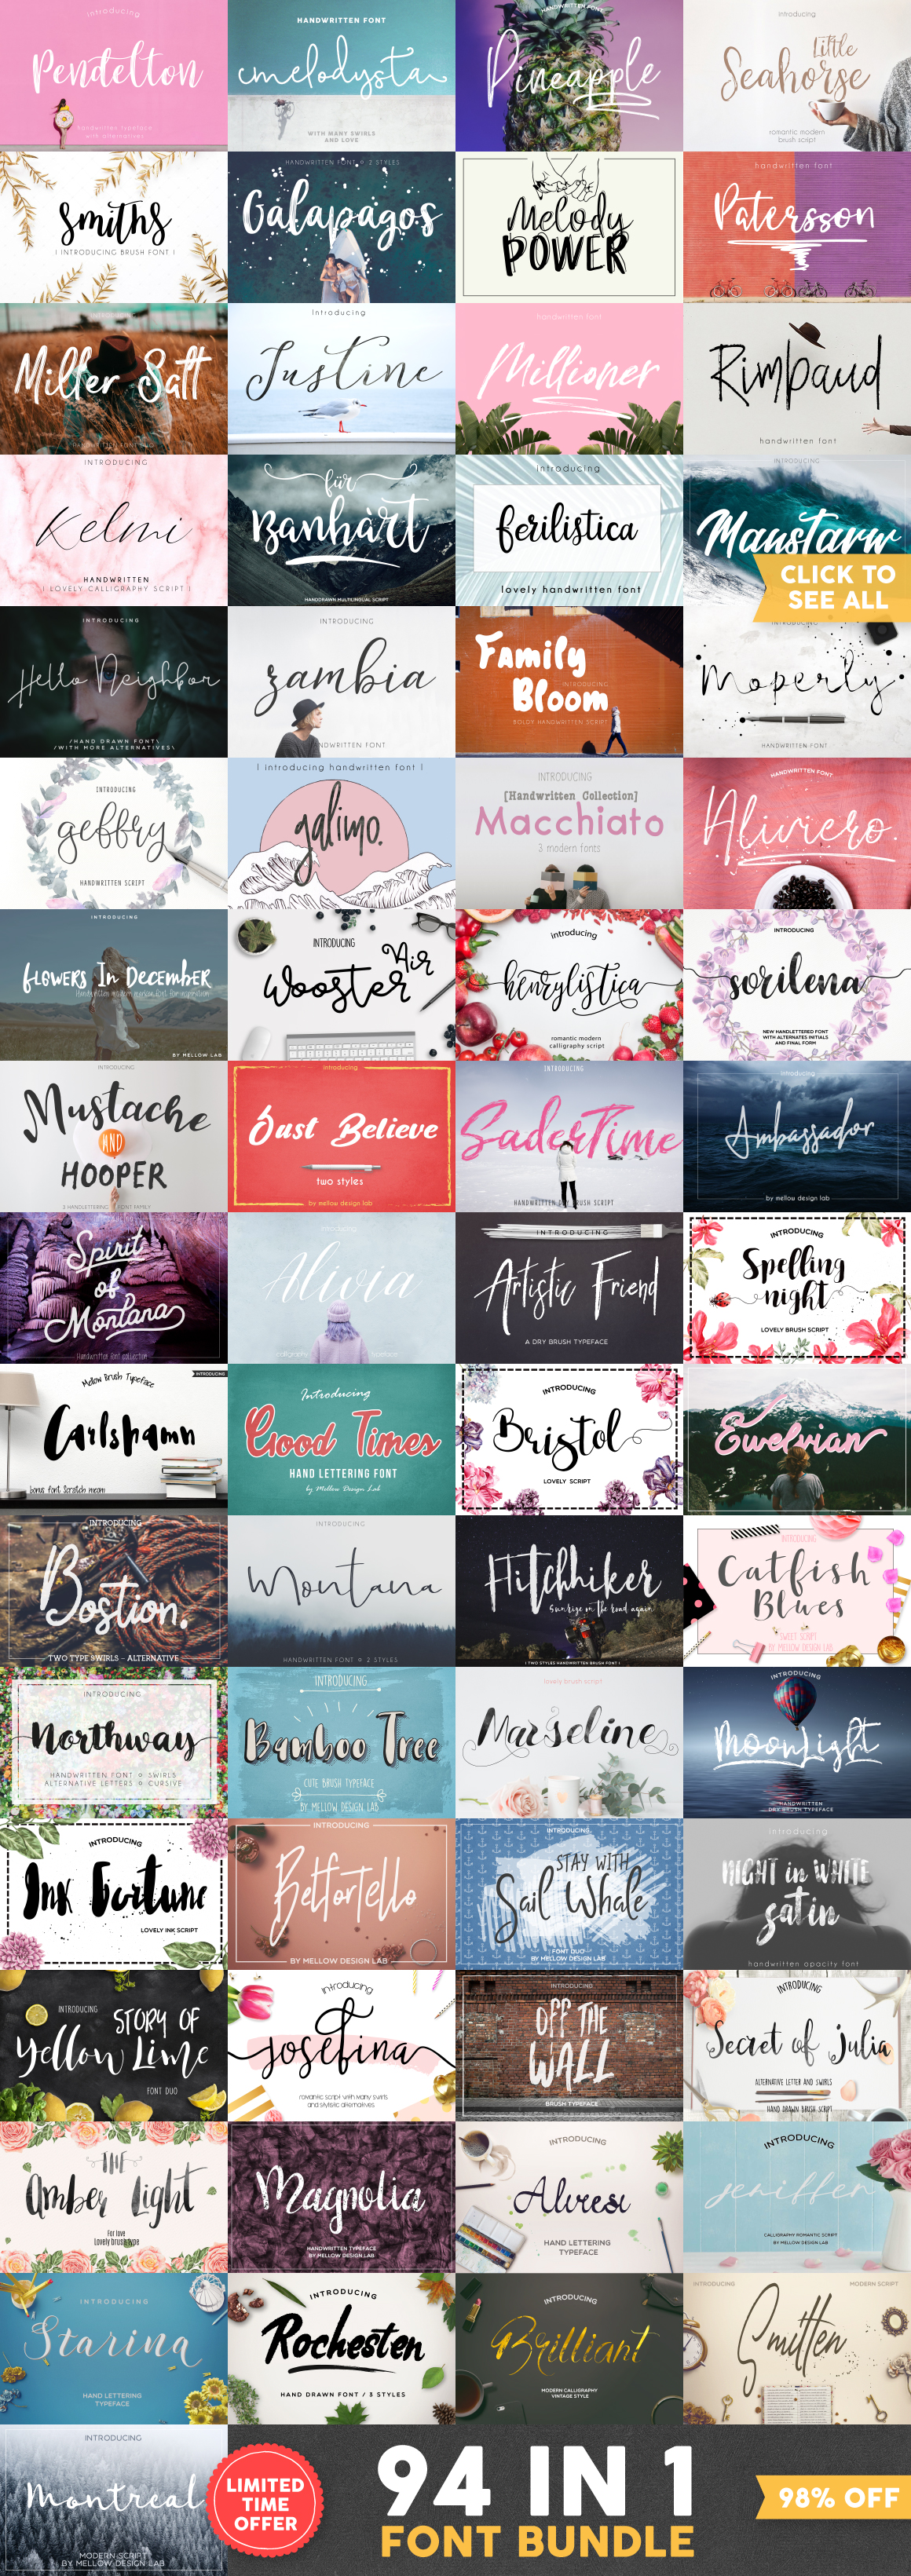 94 IN 1 Font Bundle SALE example image 2